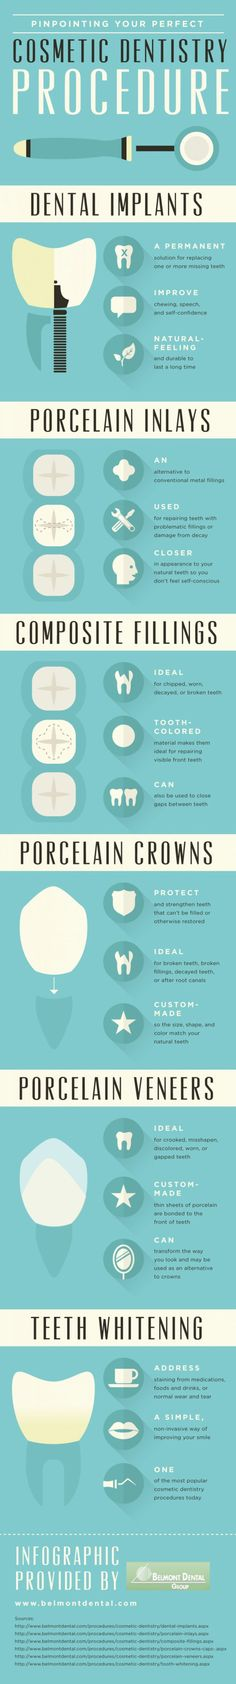 What is the perfect cosmetic dentistry procedure for you?  www.mirrorcosmeticdentistry.com